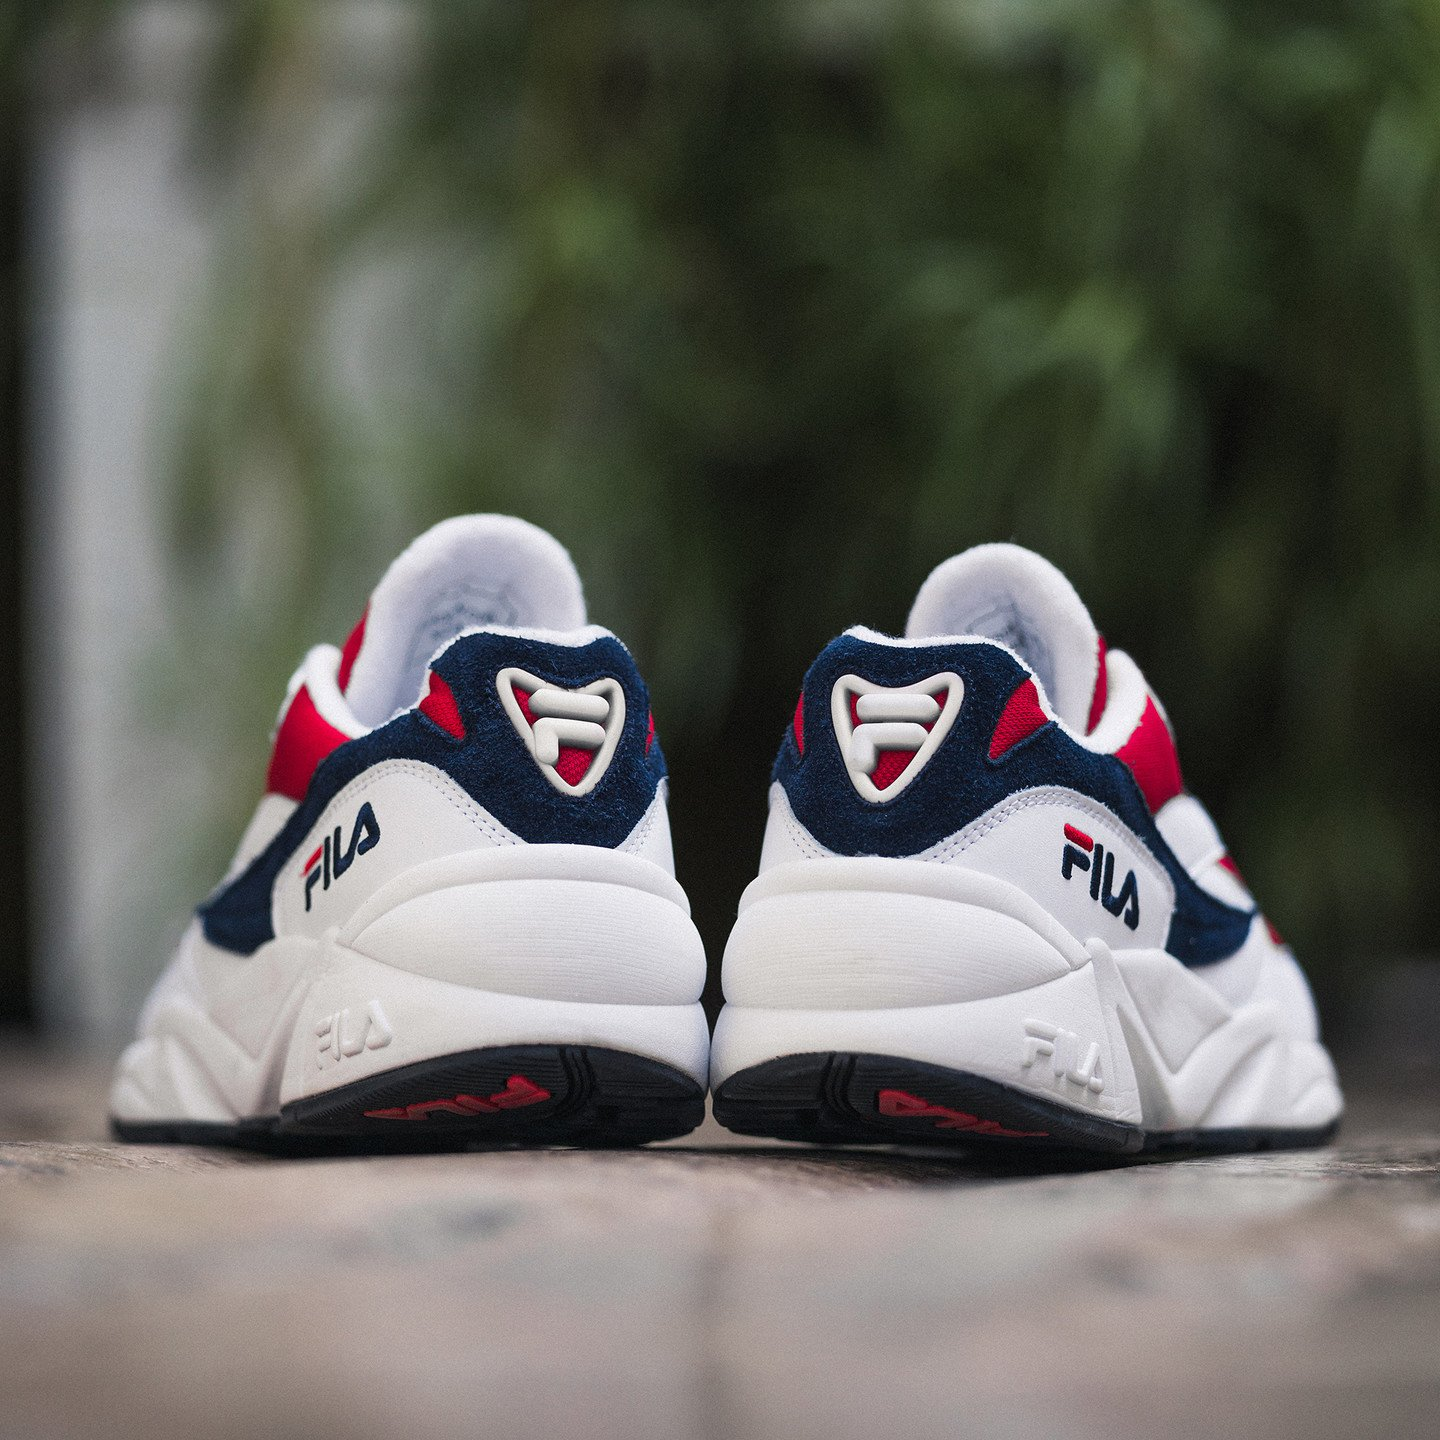 Fila Venom OG Low Wmn White / Fila Navy / Fila Red 1010291-150